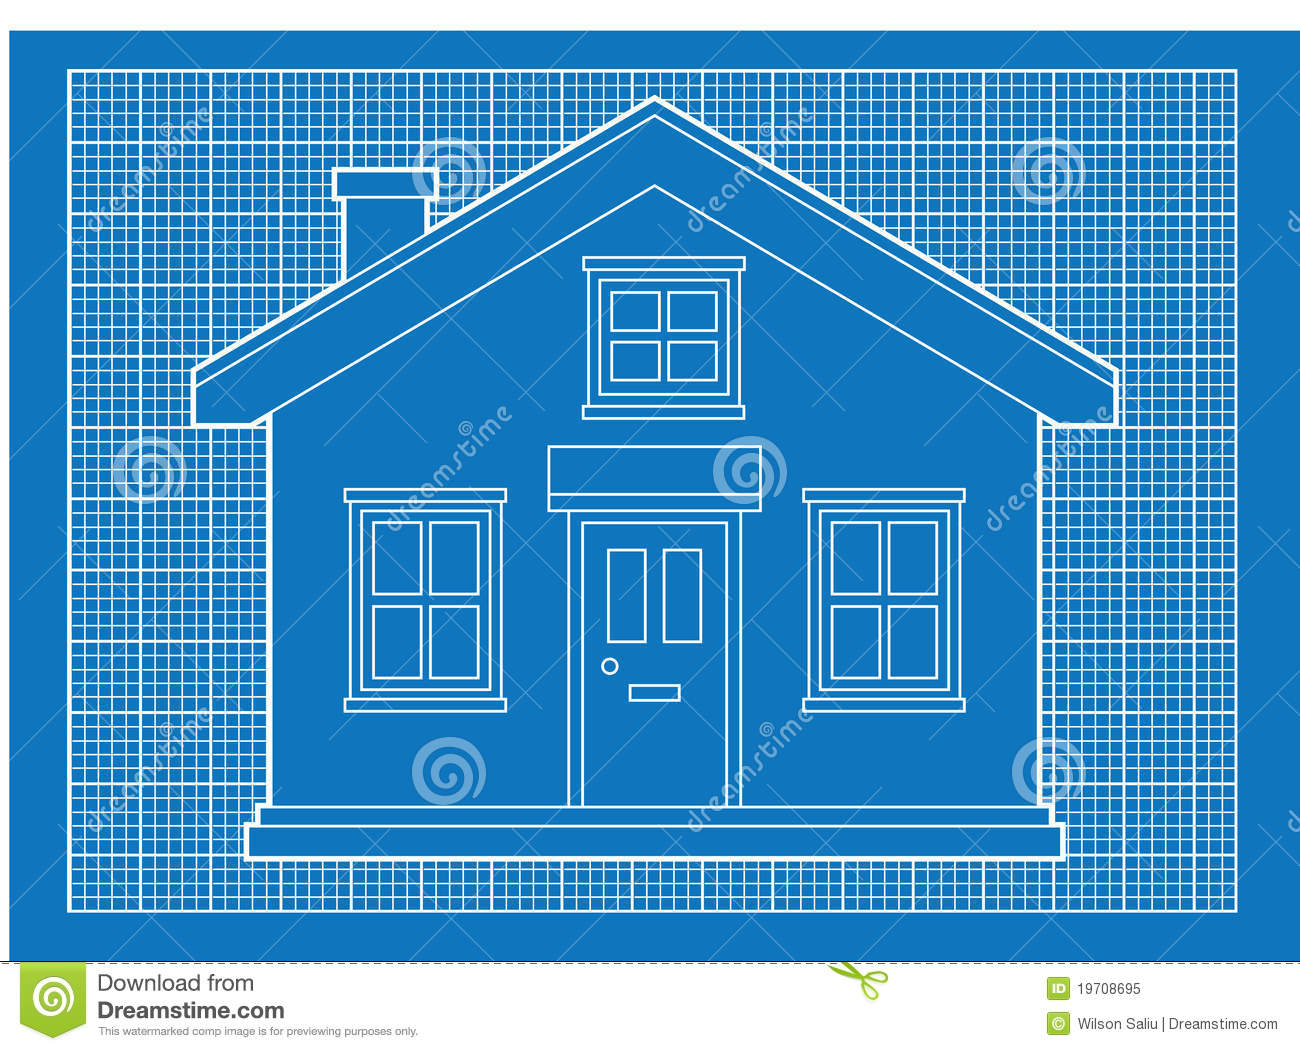 Architecture Blue Prints Dream House Blue Prints